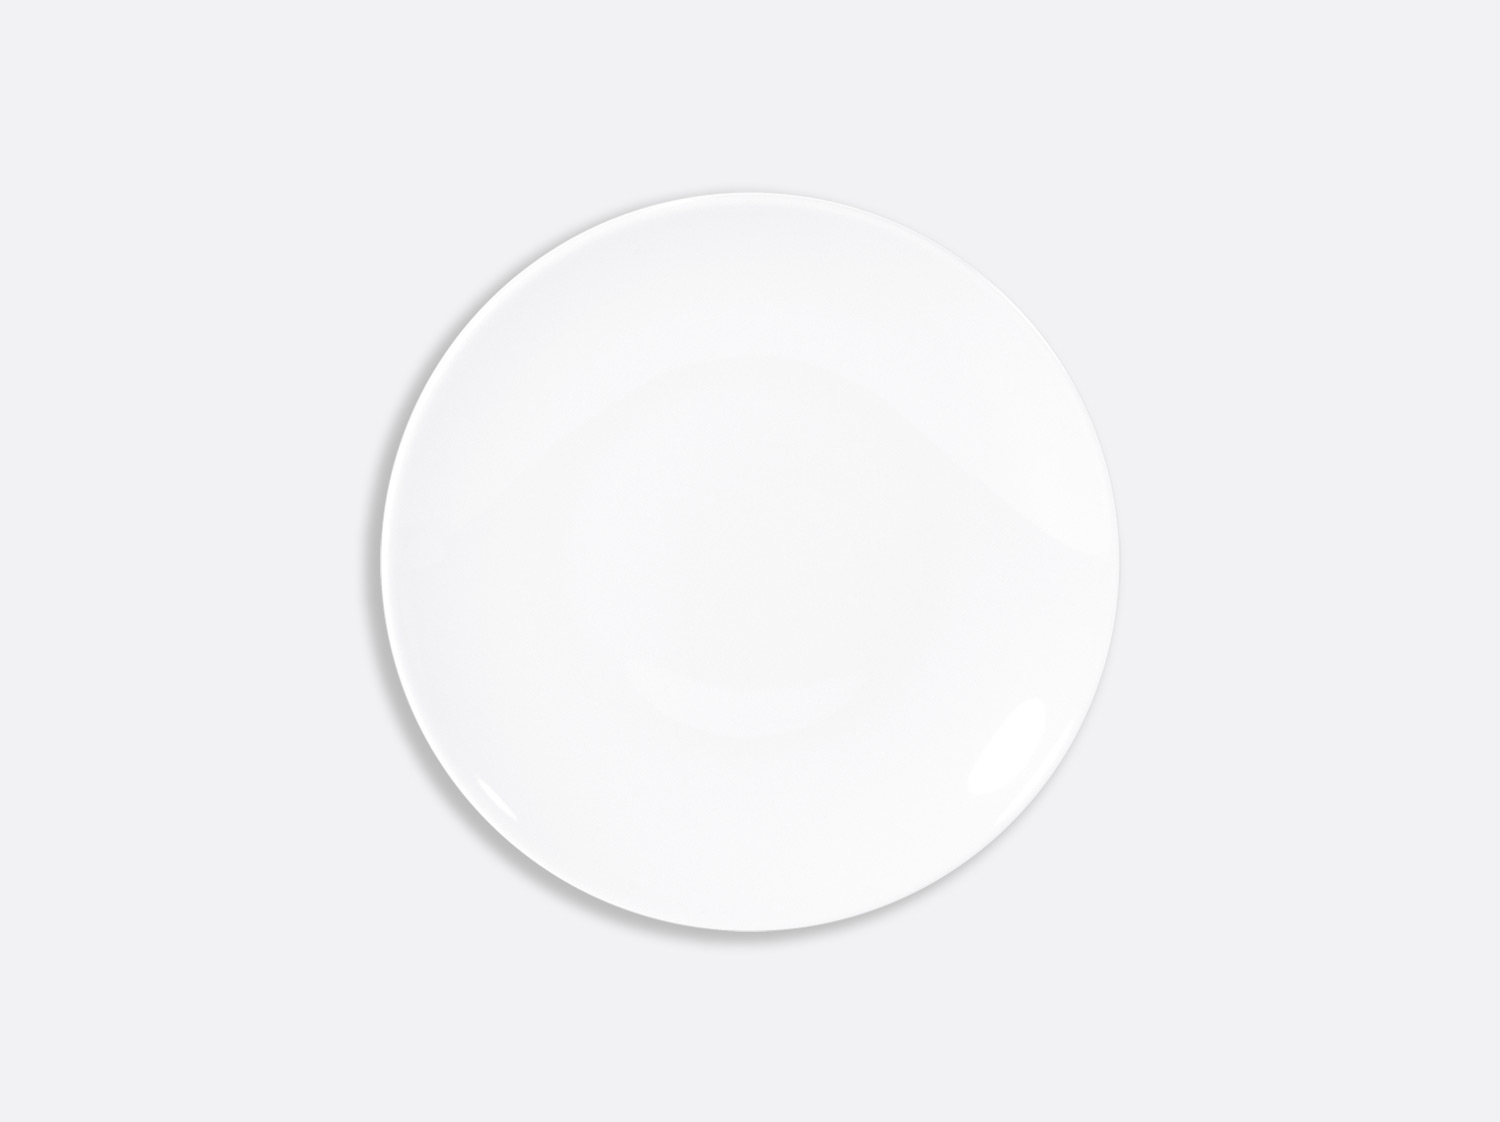 China Ultra flat plate 16 cm of the collection Domus blanc | Bernardaud